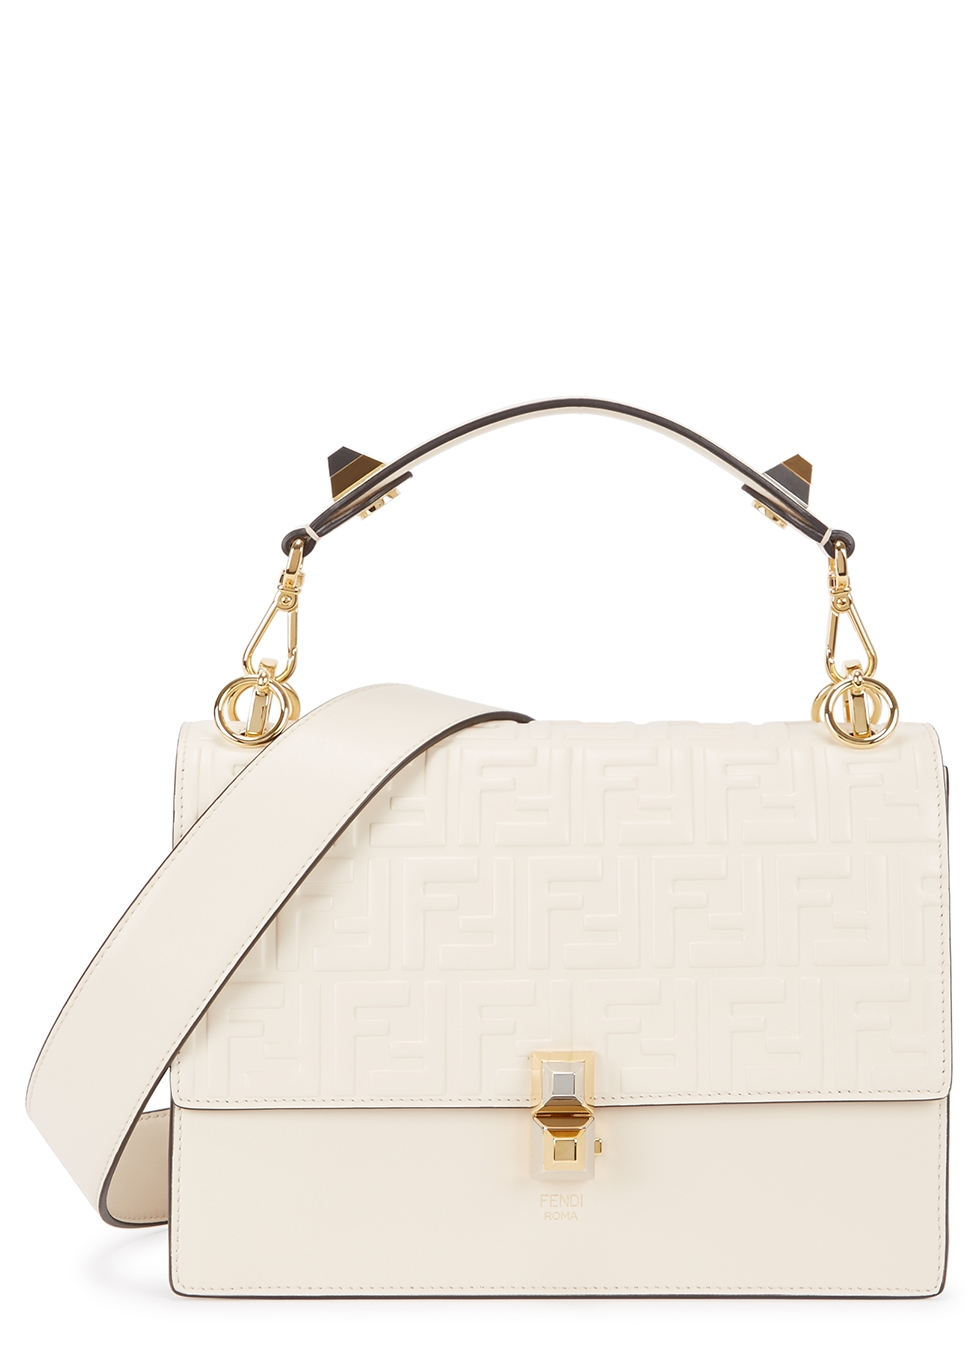 Kan I ivory leather top handle bag - Fendi